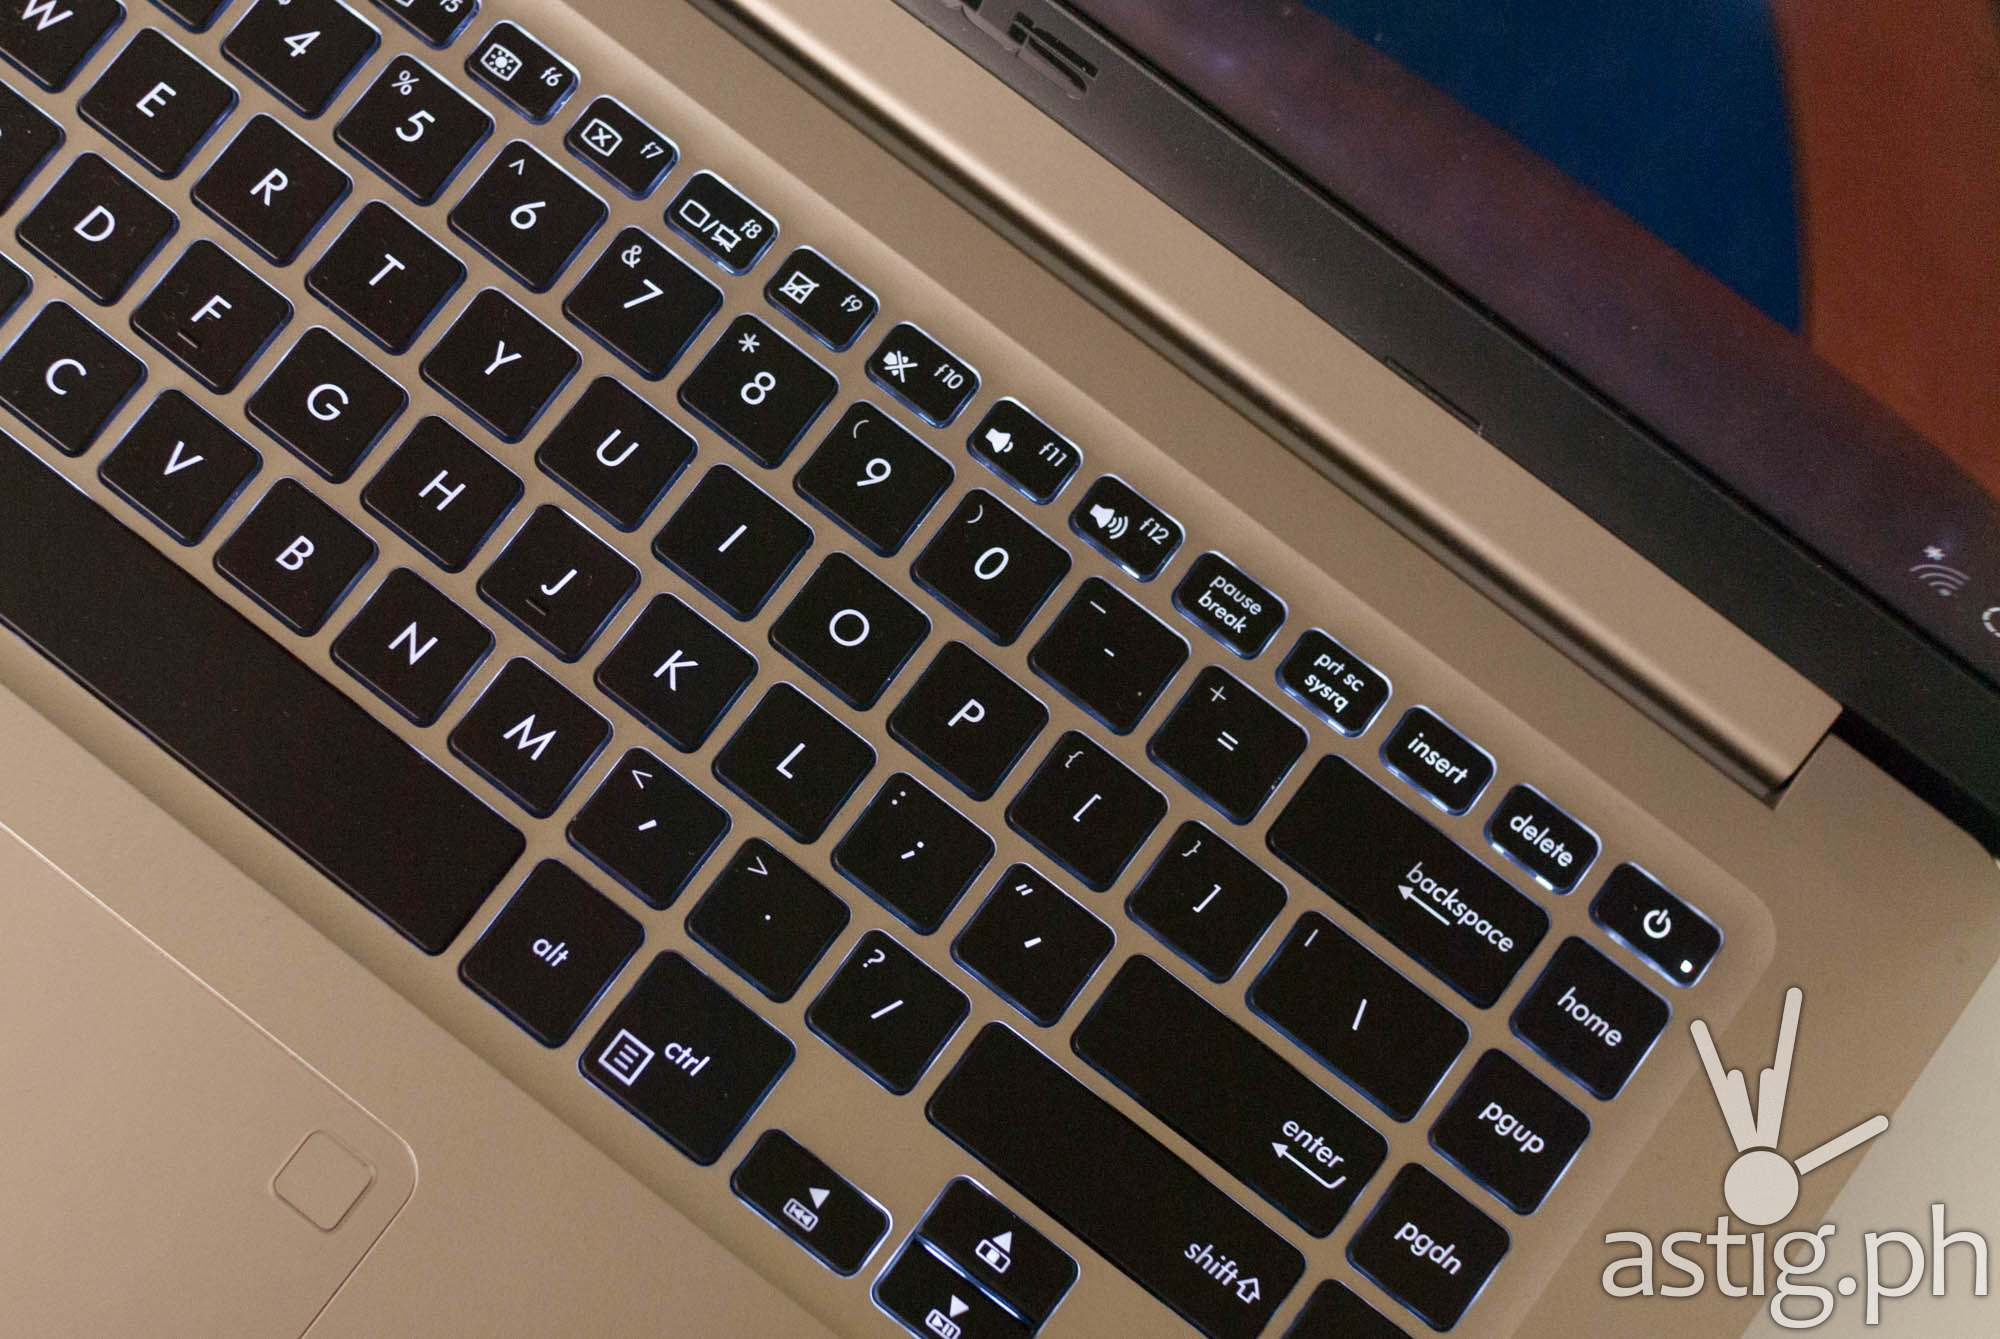 The placement of the power button beside the delete, backspace, and home buttons make it prone to accidents - ASUS VivoBook S15